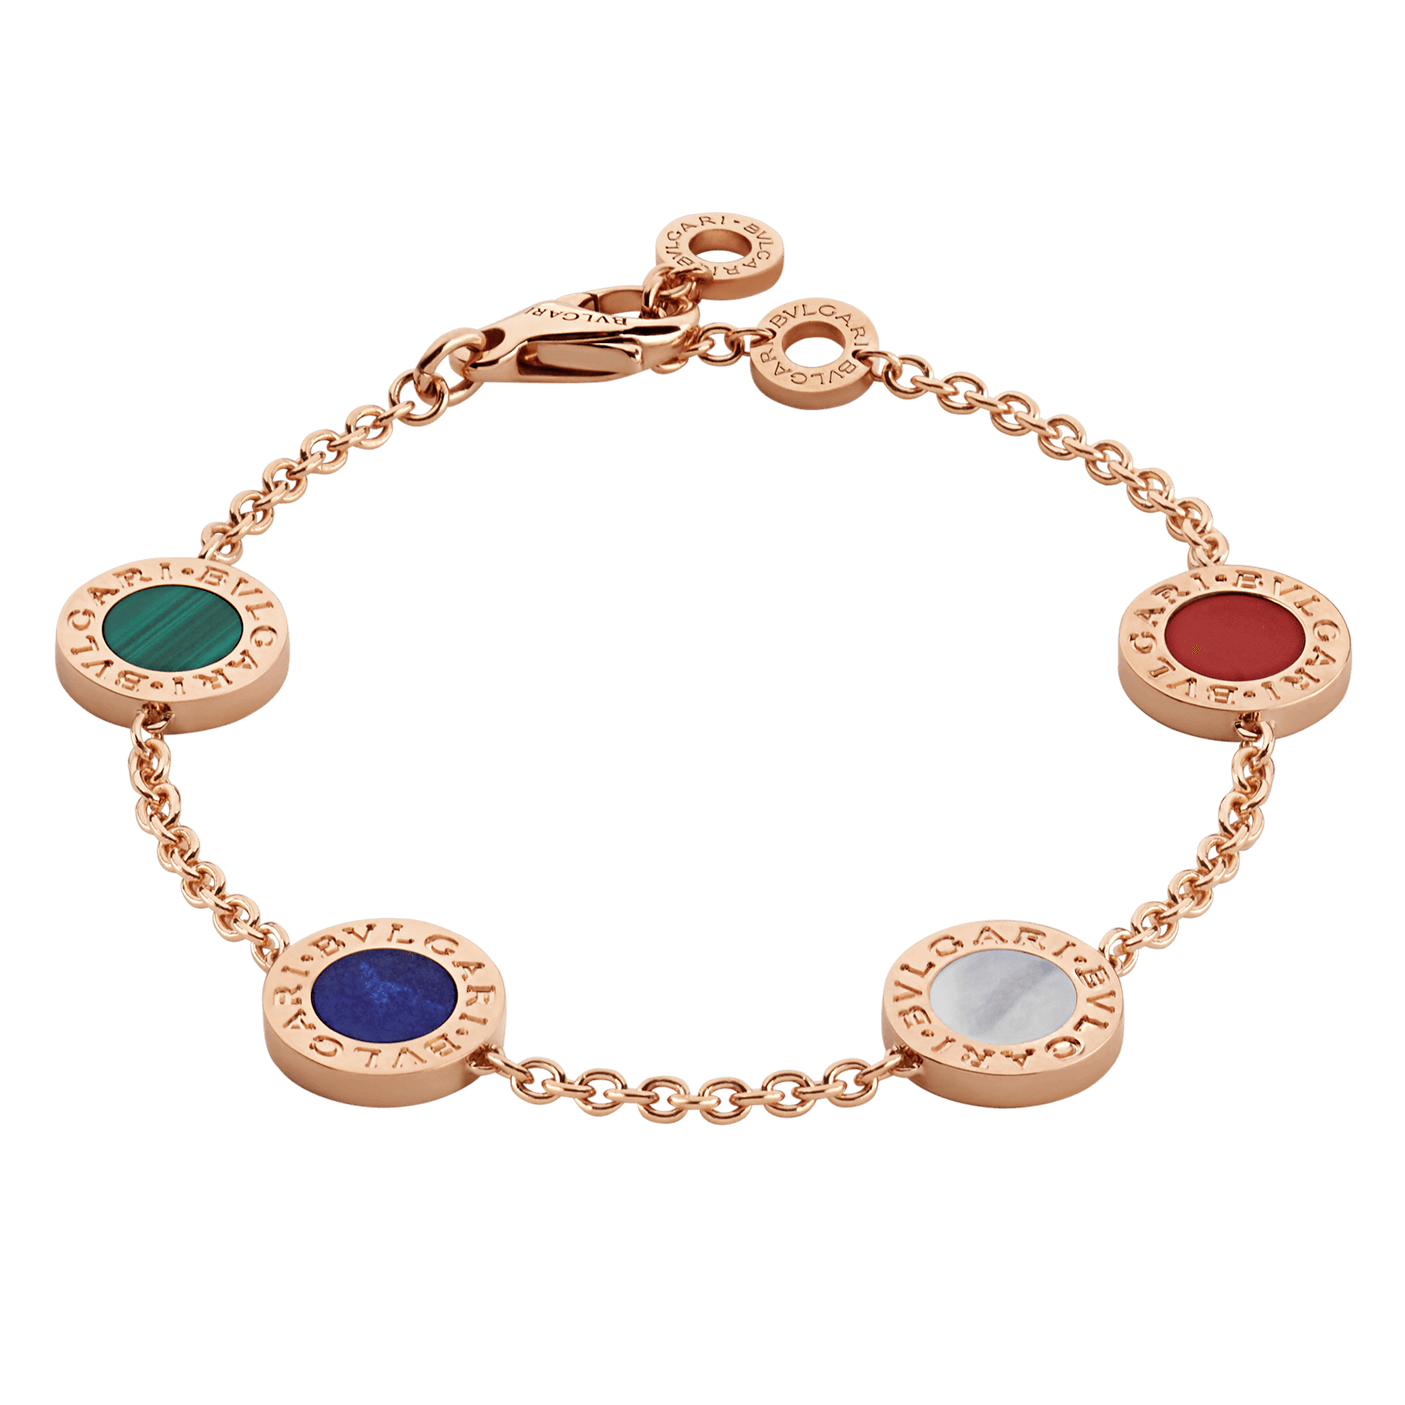 Fake Bulgari Bracelet 18k rose gold